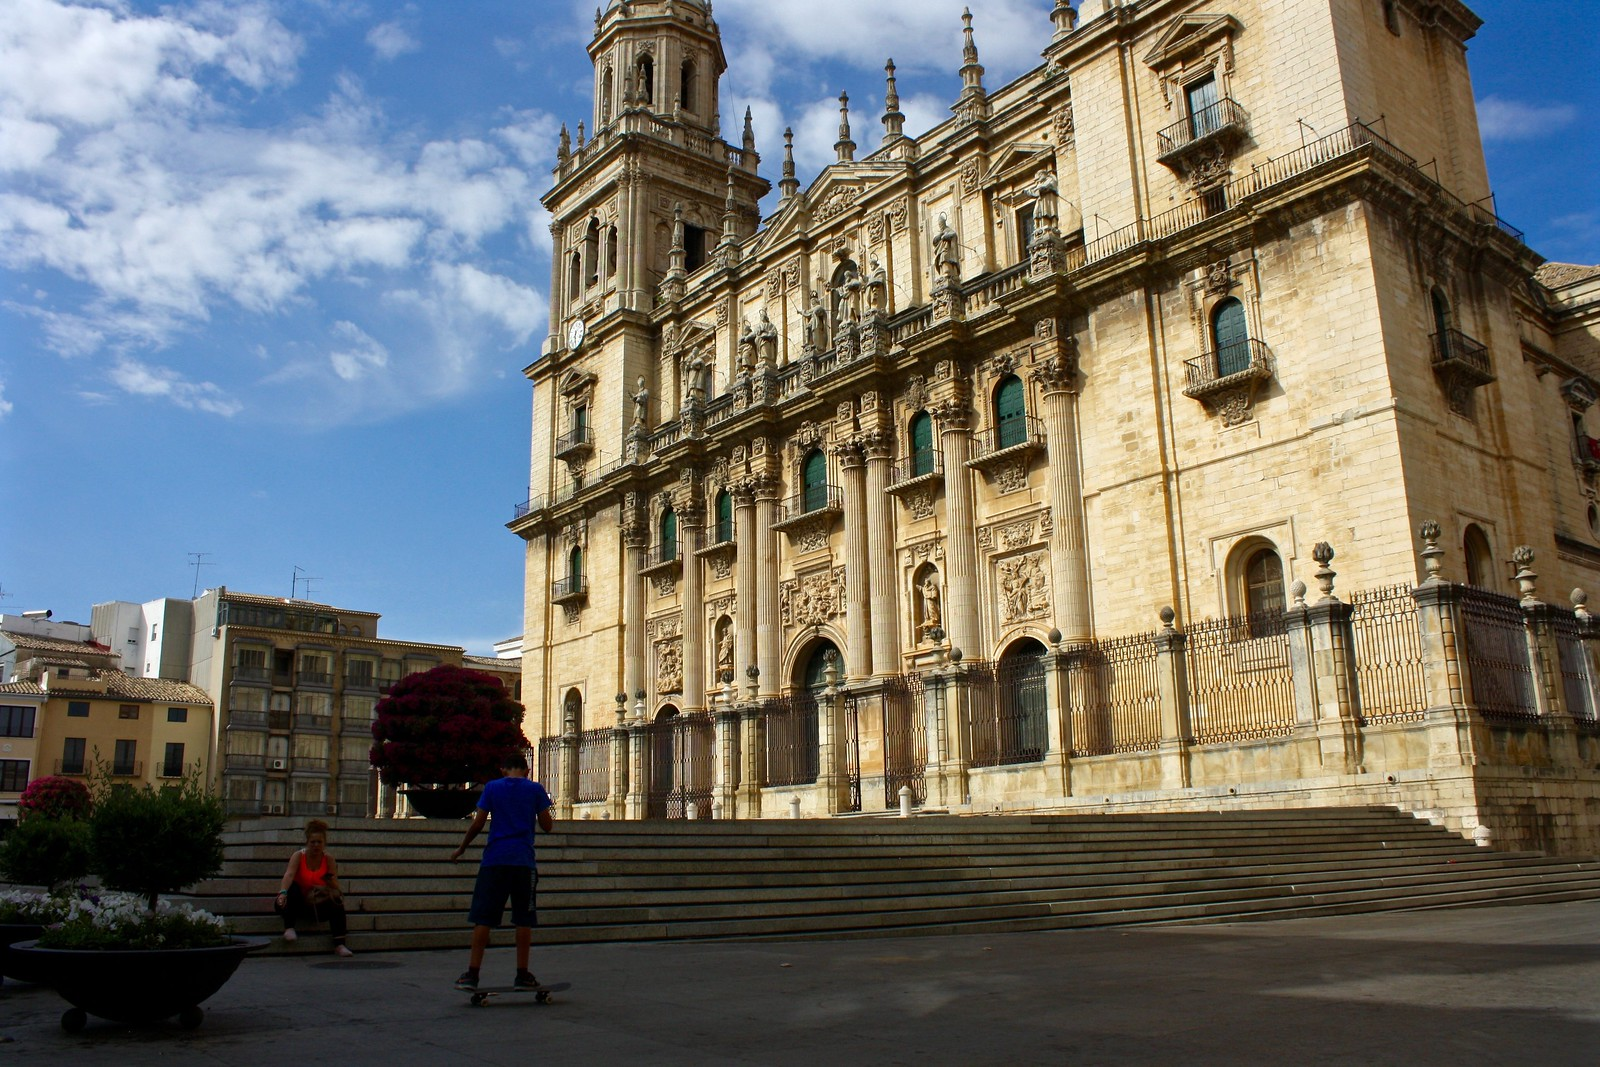 Plaza in front of Jaén cathedral, Spain